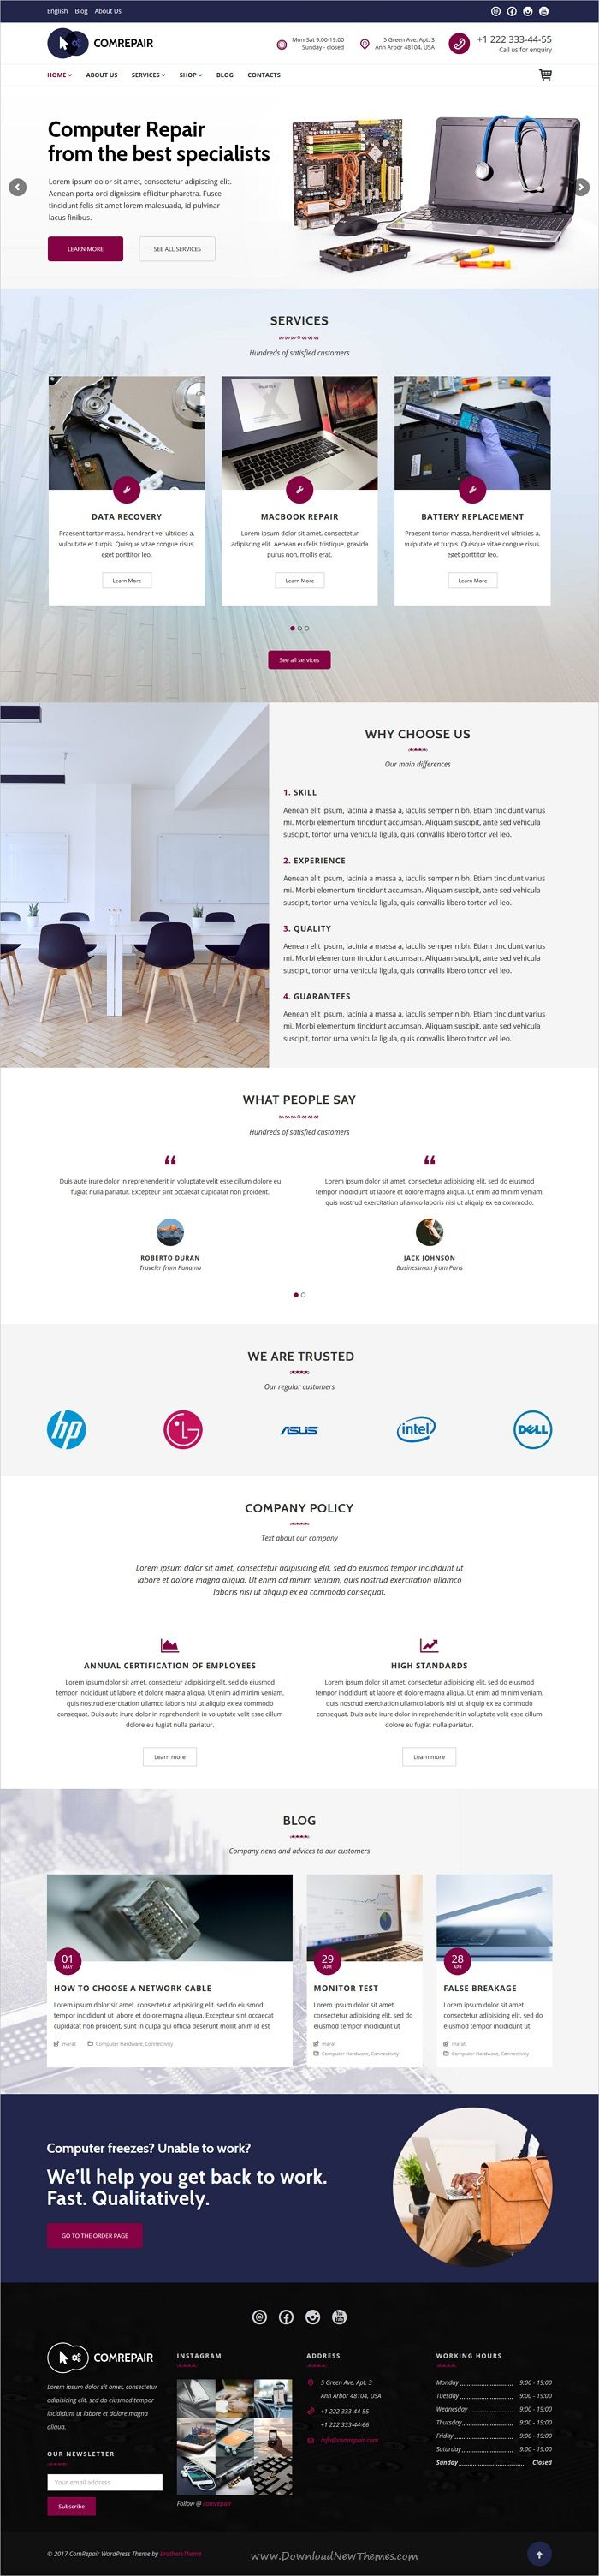 ComRepair is clean and modern design 4in1 responsive #WordPress theme for #electronics and mobile #repair services website download now > https://themeforest.net/item/comrepair-computer-repair-services-wordpress-theme/19836952?ref=Datasata